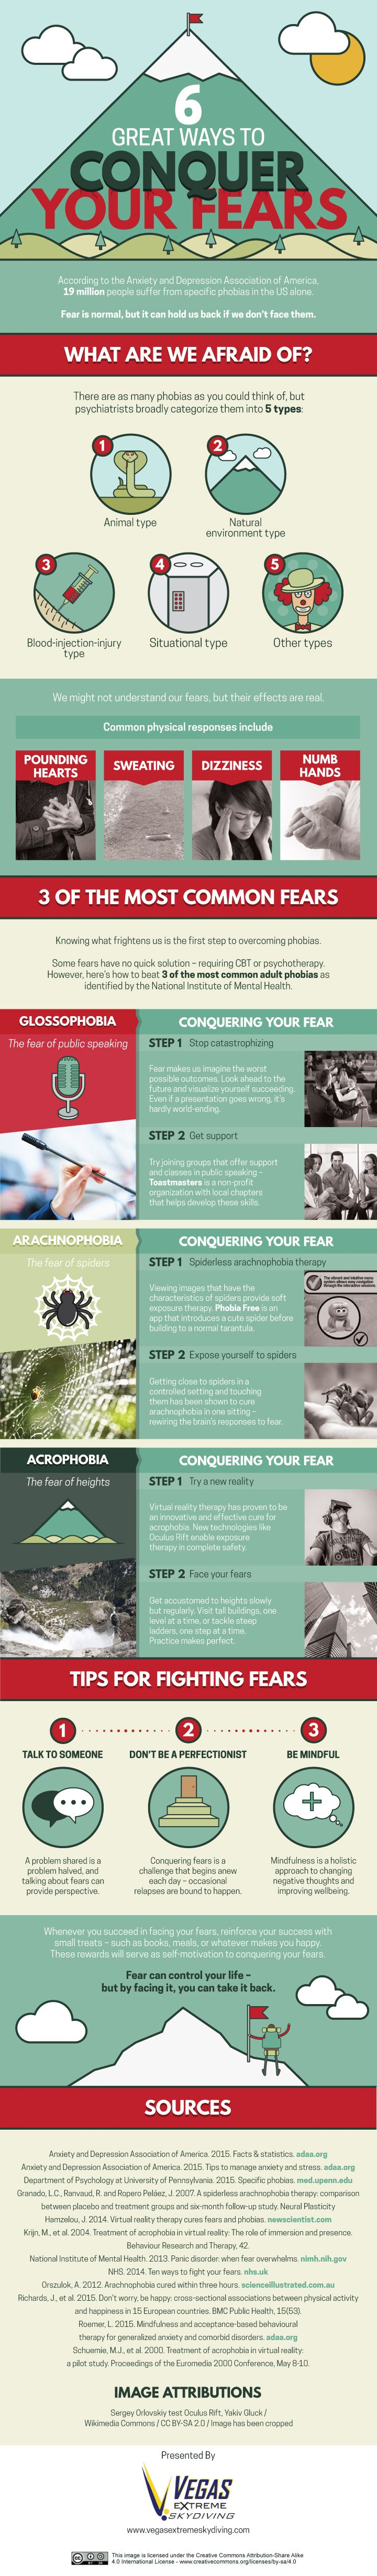 6 Great Ways to Conquer Your Fears